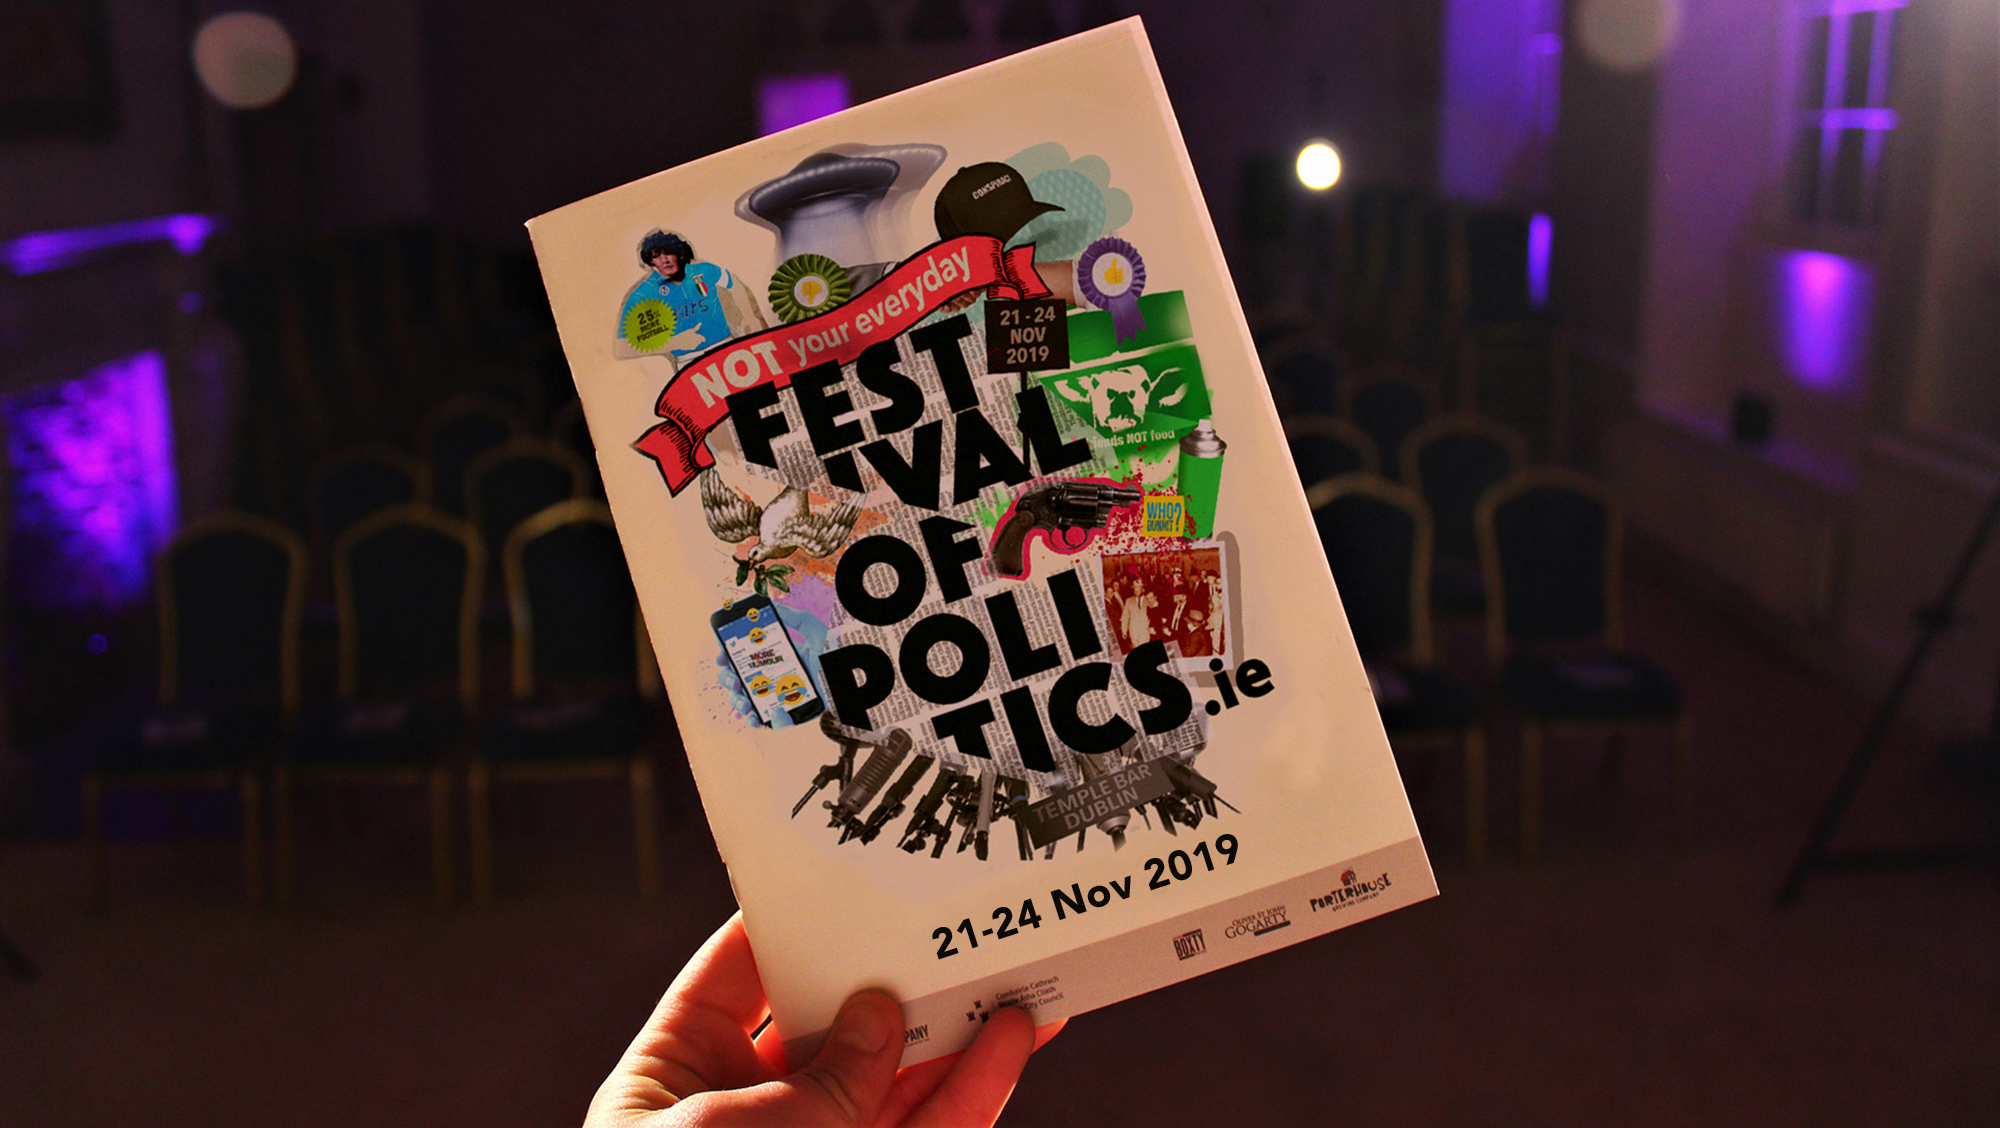 Cover image: Festival of Politics